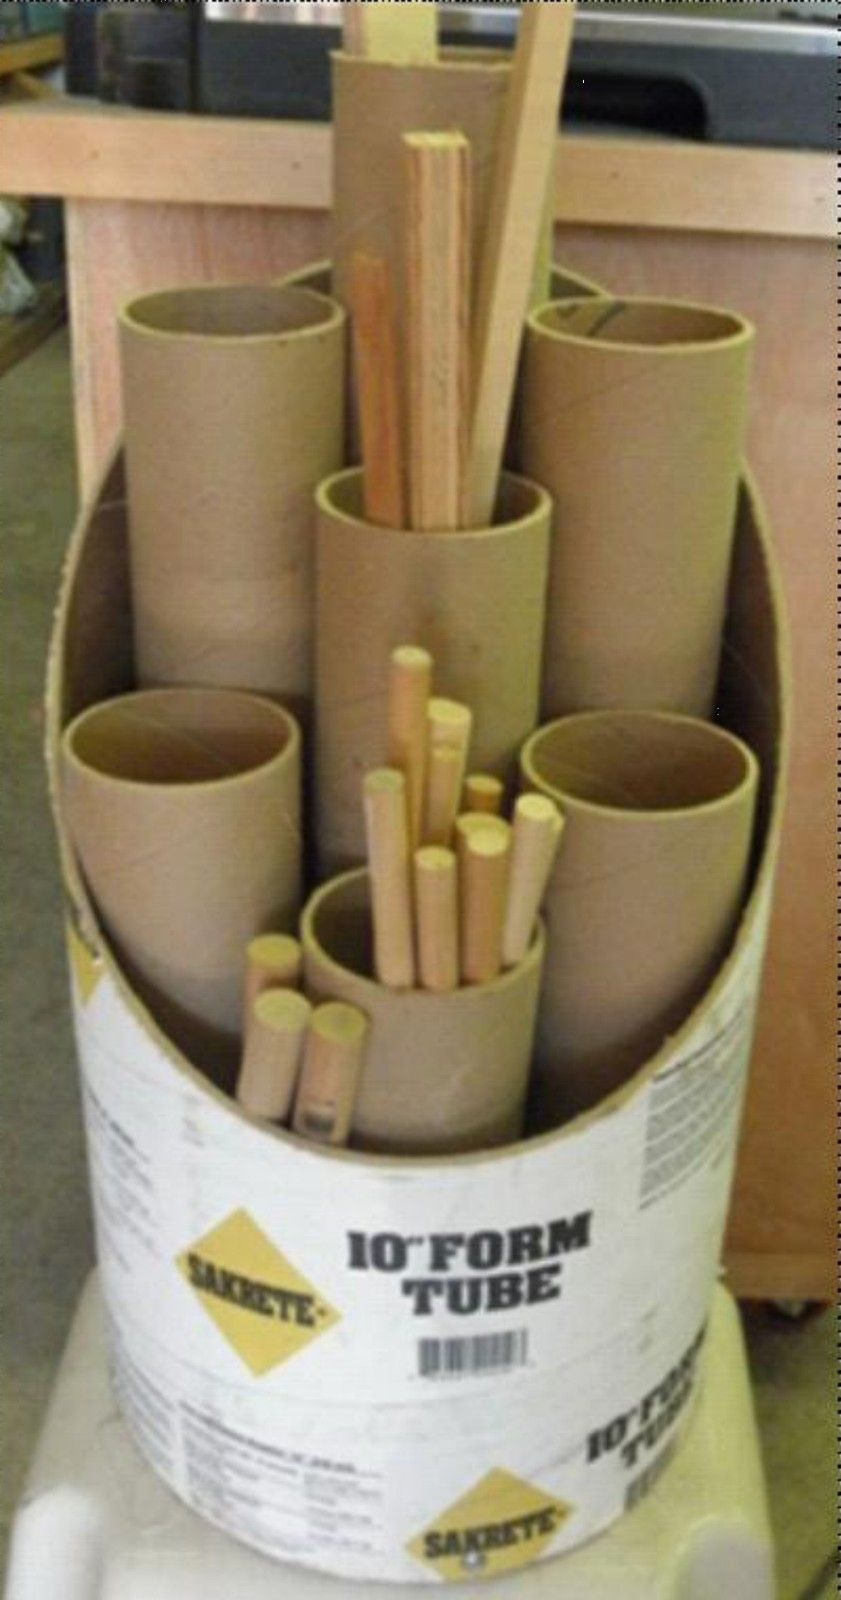 Concrete Tube Forms Concrete Form Tubes Or Smaller From Wrapping Toilet Paper Etc